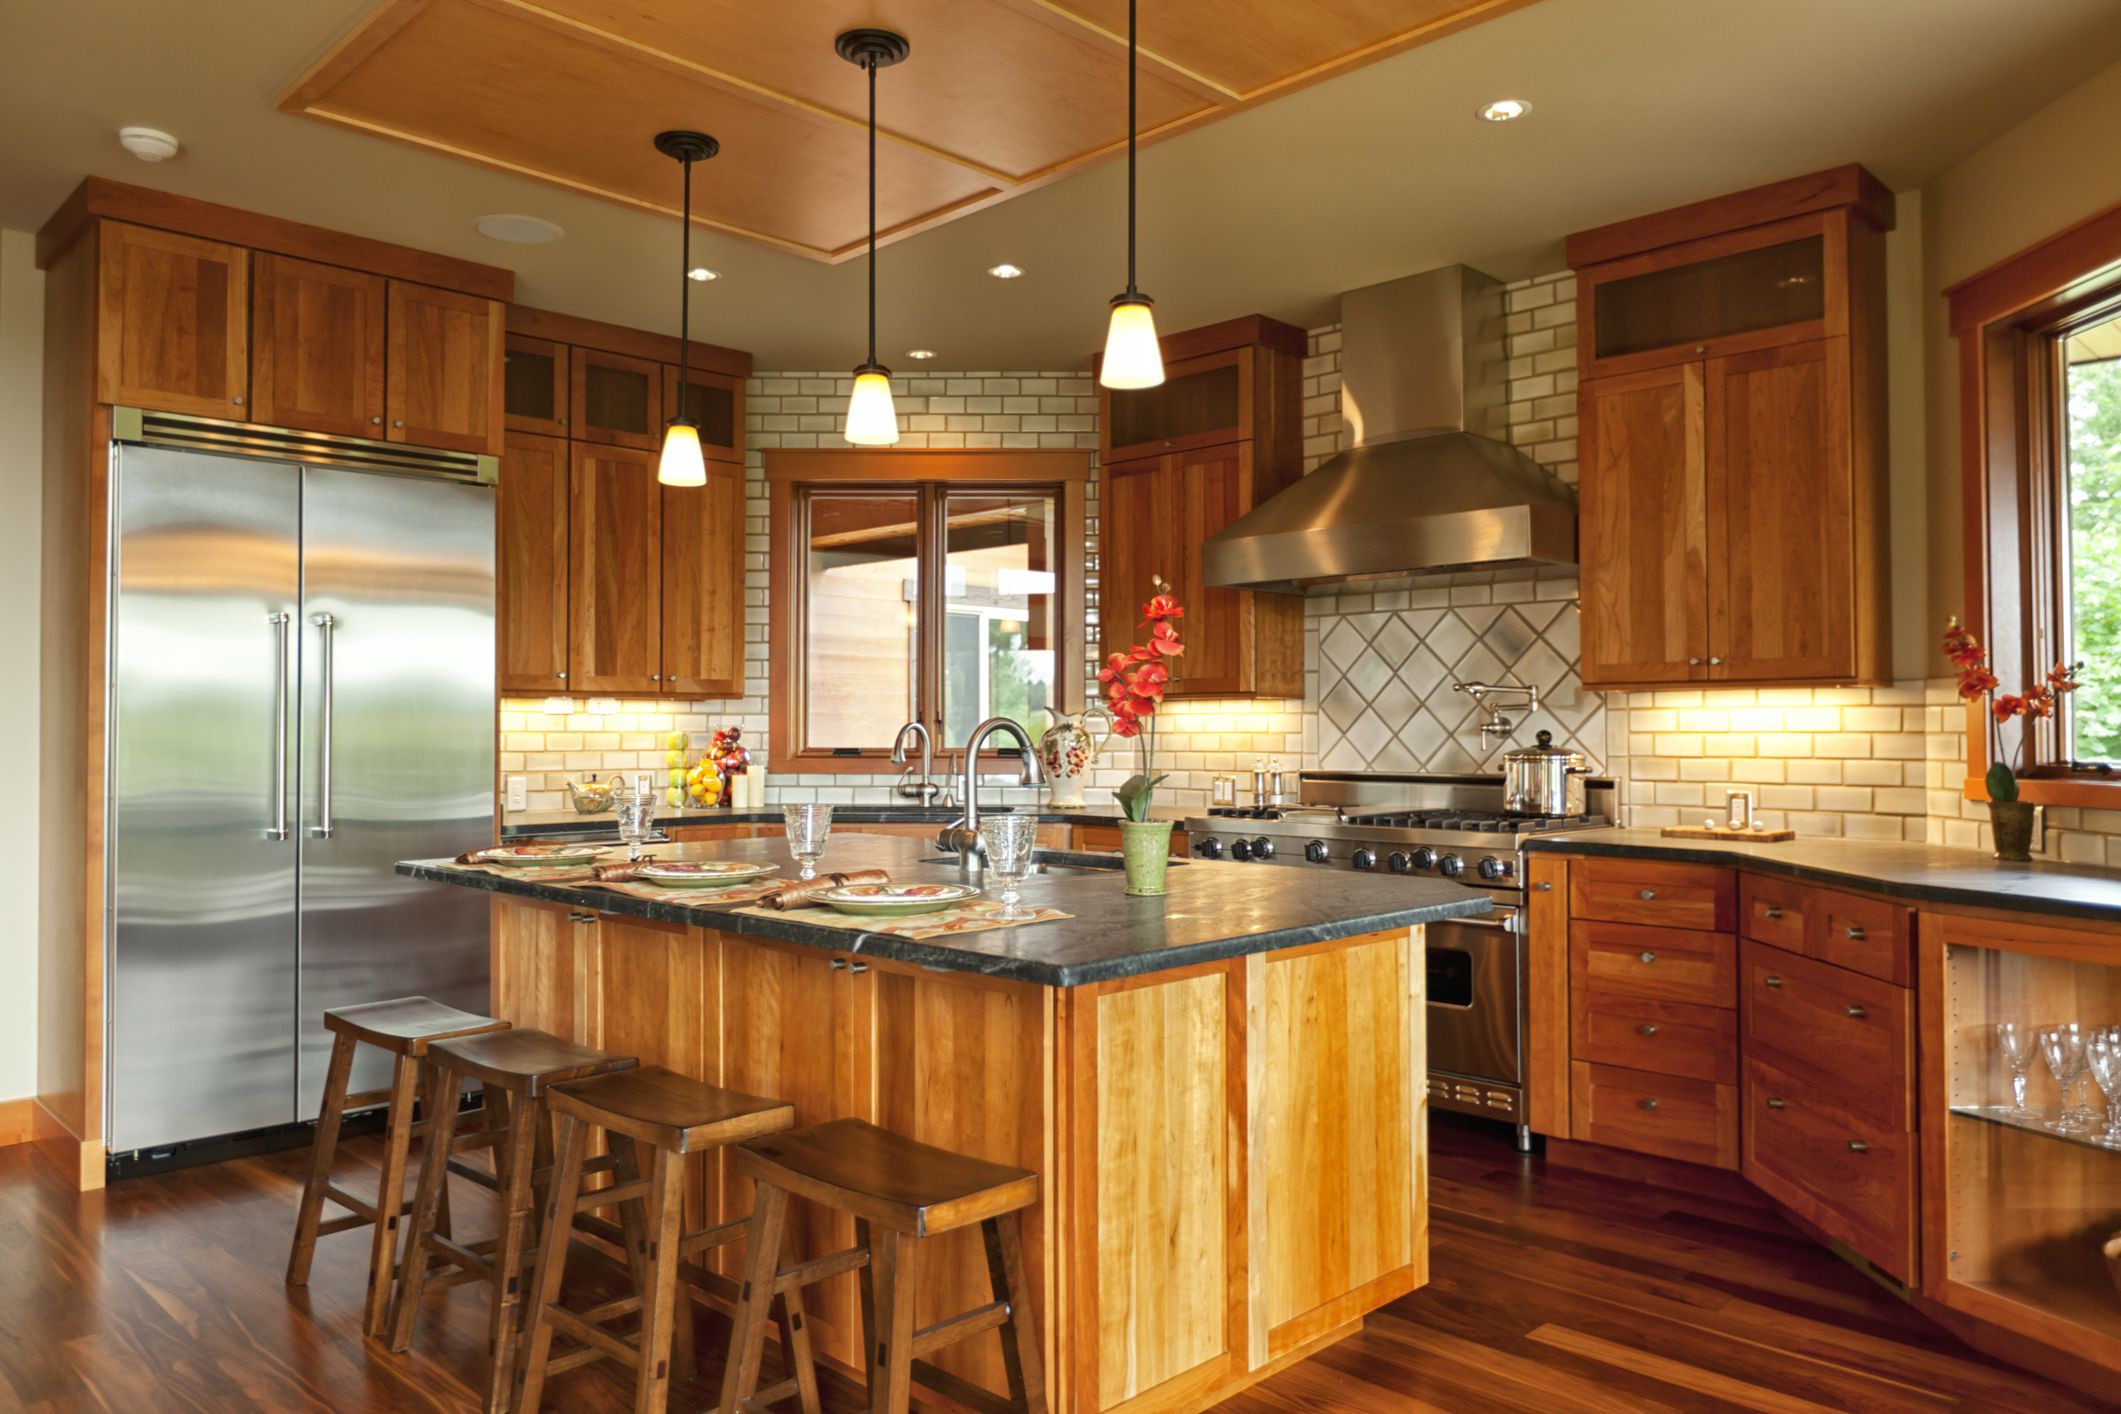 average cost of hardwood floors of how much should you budget for home maintenance with regard to gettyimages 155429847 58e3e7bc5f9b58ef7e0fca43